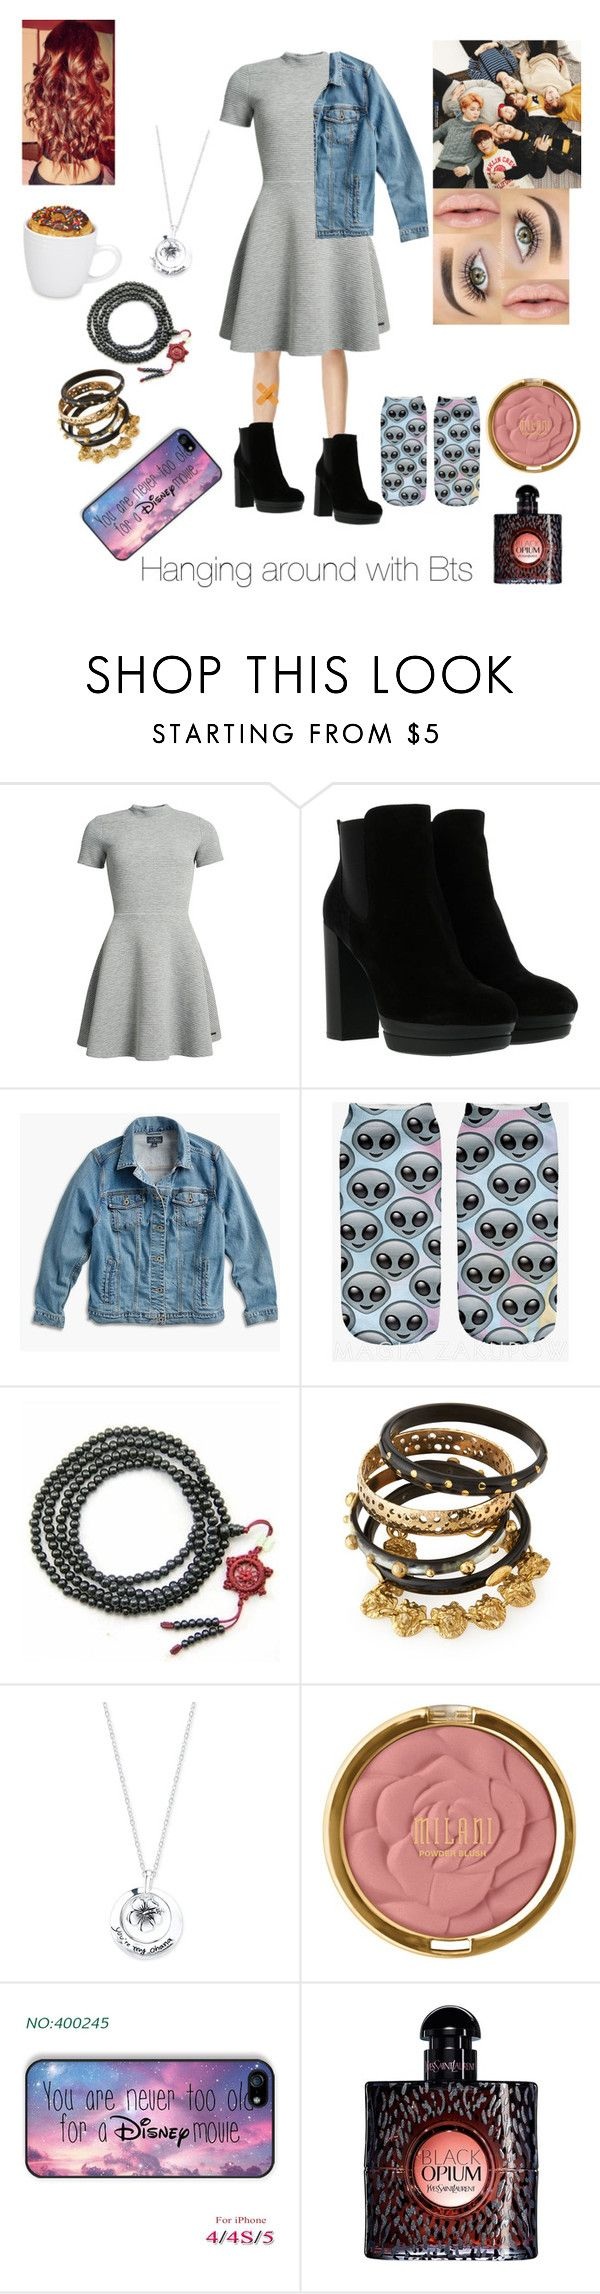 """Hanging around with BTS"" by liazpanda ❤ liked on Polyvore featuring Superdry, Hogan, Lucky Brand, Urban Decay, Ashley Pittman, Disney, Milani, Yves Saint Laurent and plus size clothing"